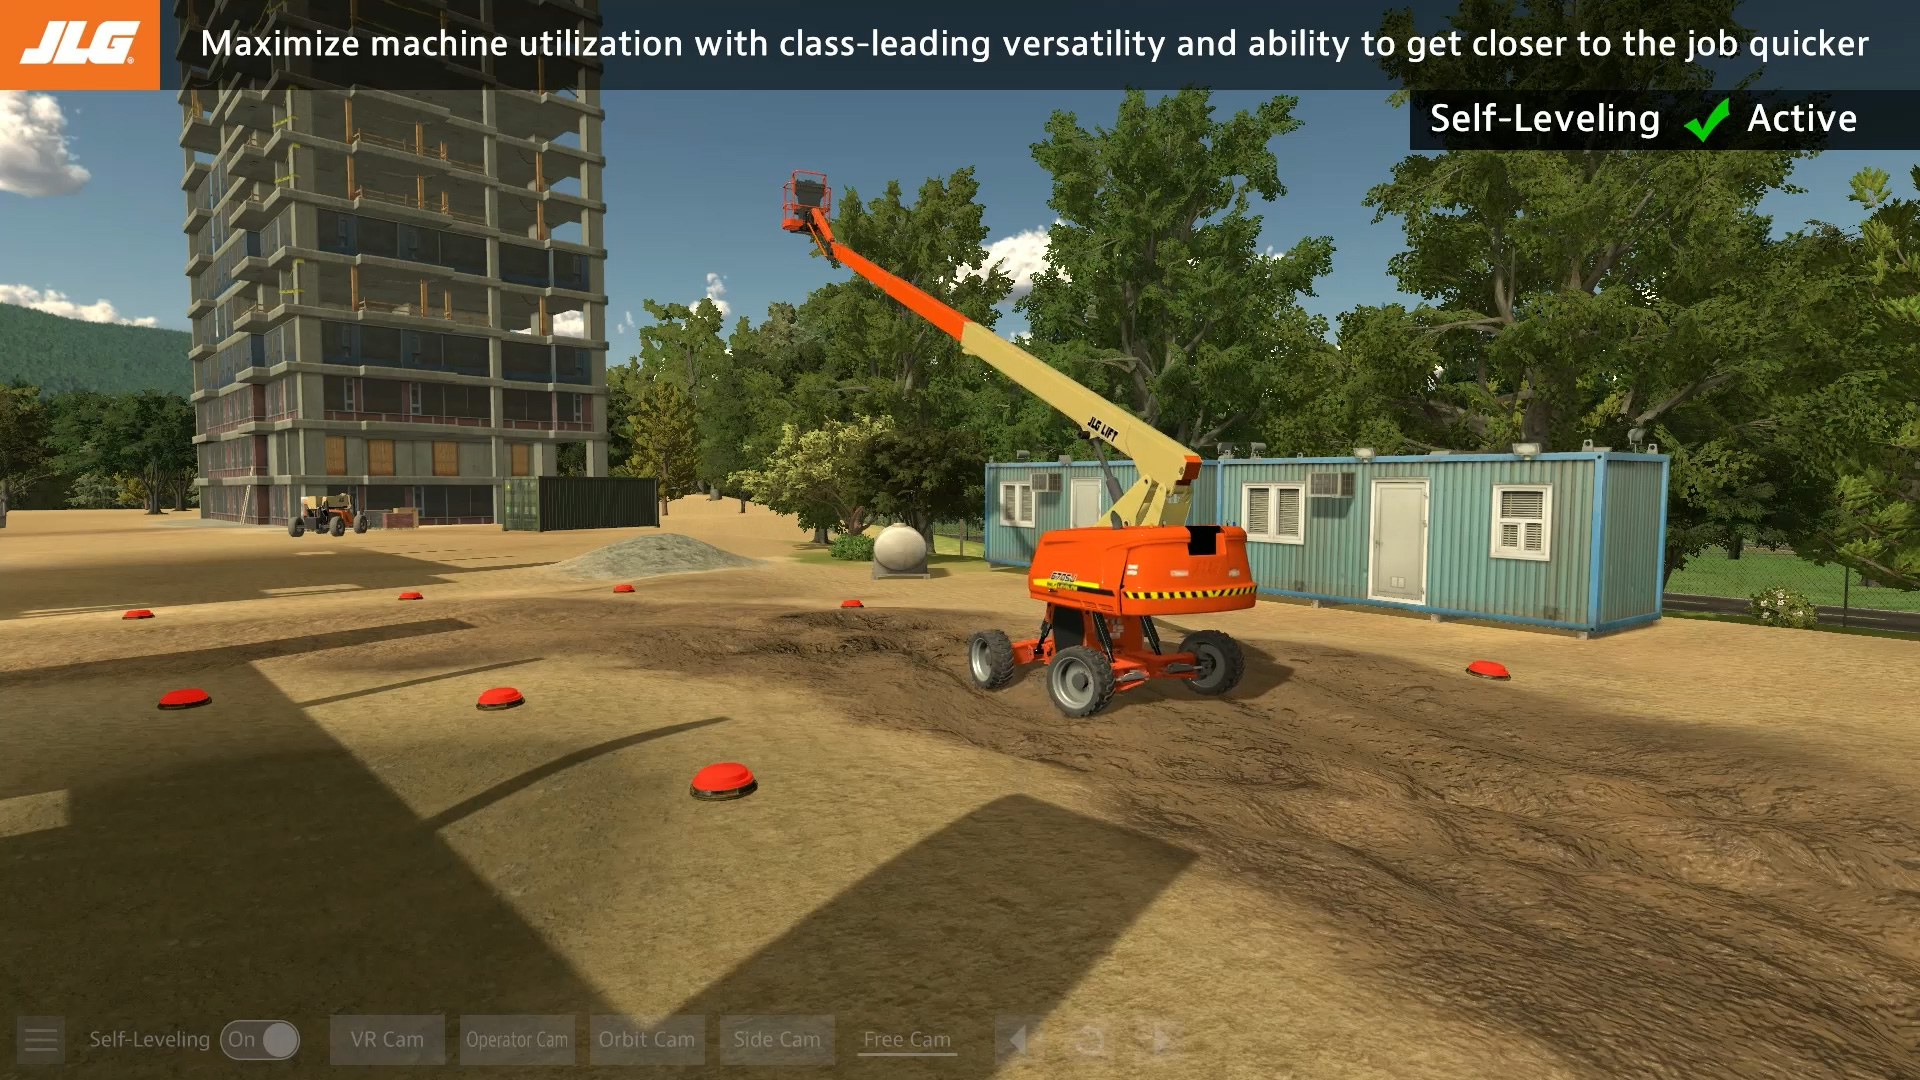 JLG Self-Leveling Chassis Boom Lift Training Simulator by ForgeFX Simulations